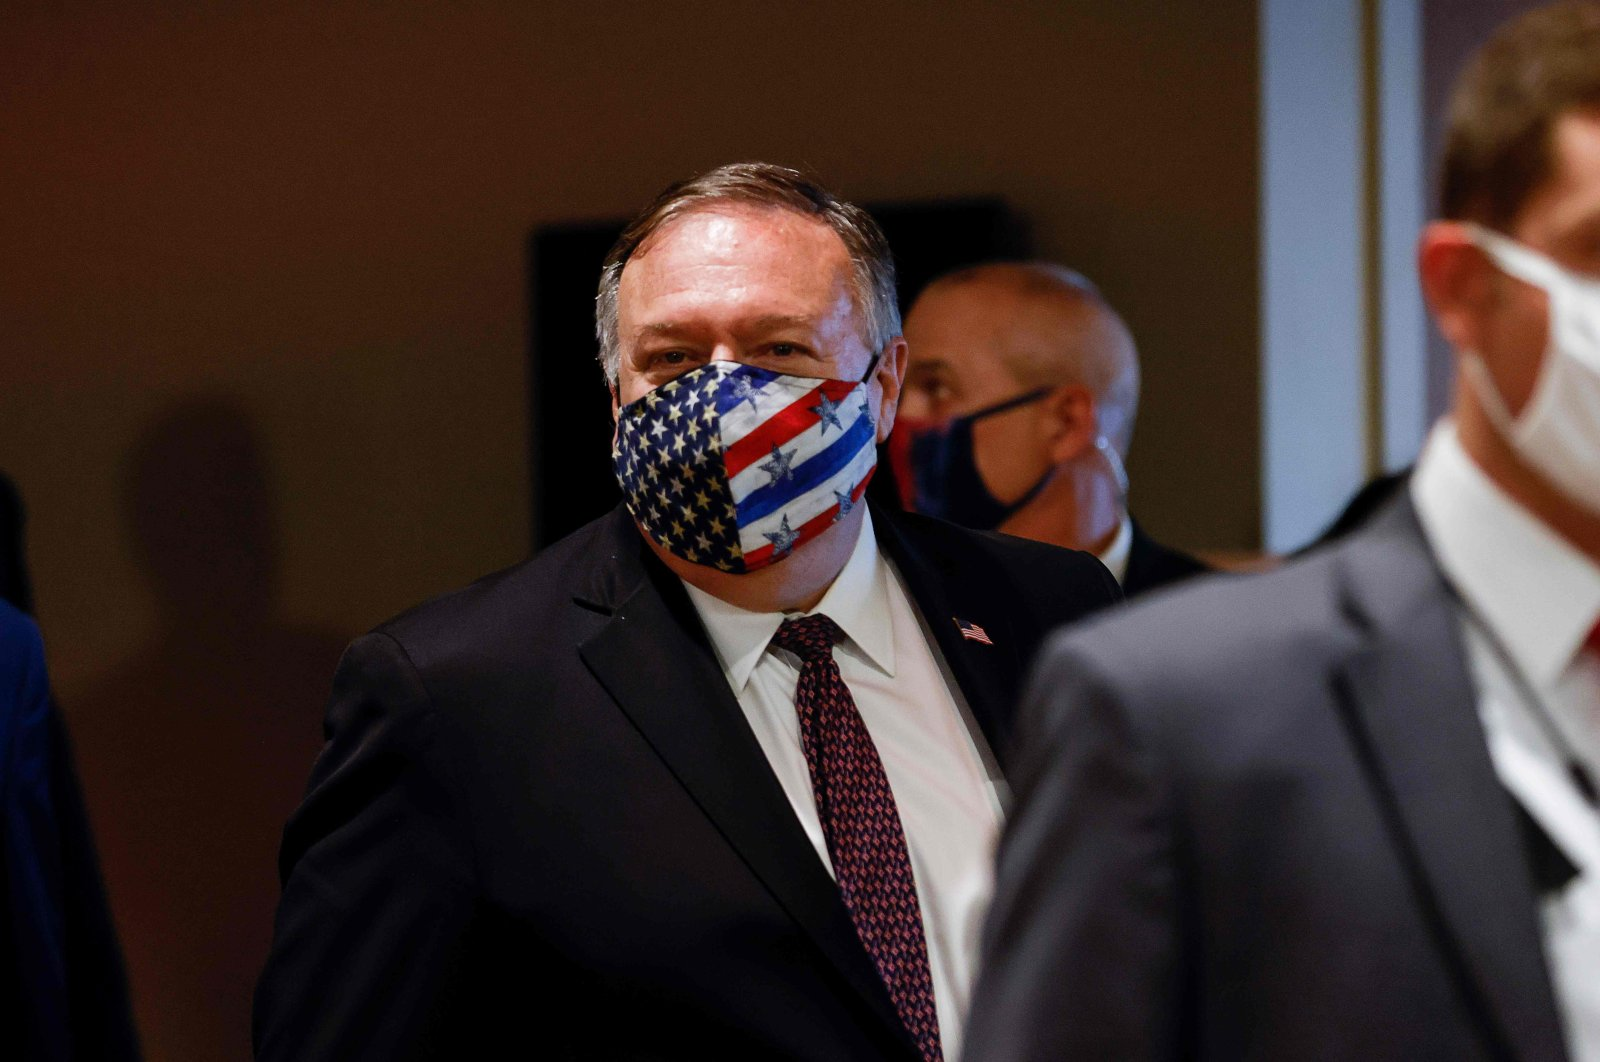 U.S. Secretary of State Mike Pompeo departs a meeting with members of the U.N. Security Council about Iran's alleged noncompliance with a nuclear deal at the United Nations in New York City, New York, U.S., Aug. 20, 2020. (AFP Photo)